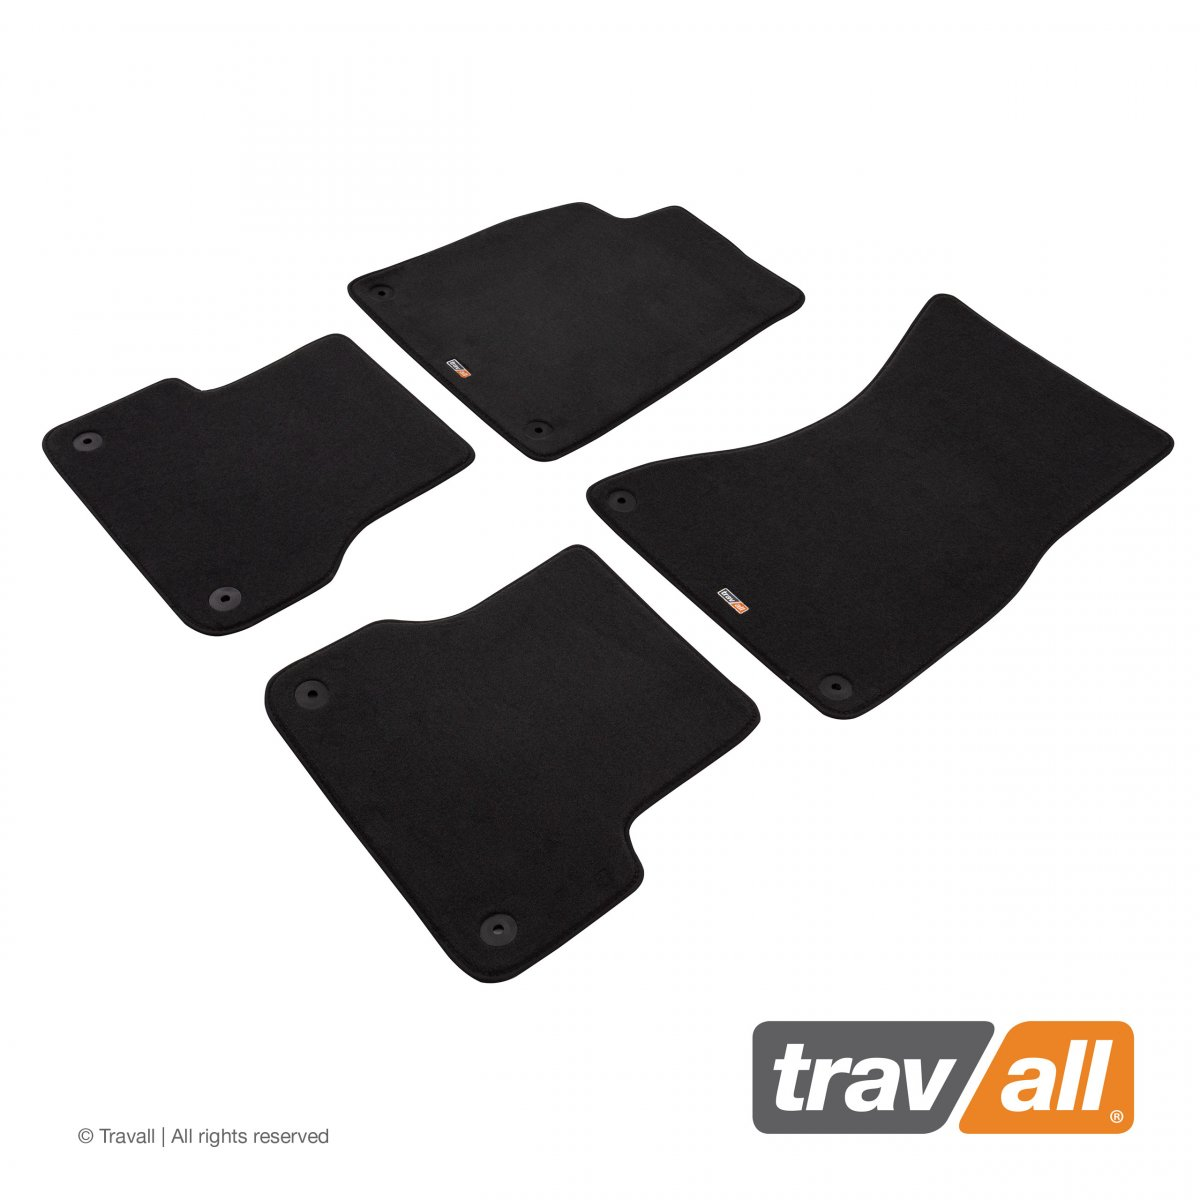 Travall® MATS [LHD] for Audi A7/S7 Sportback (2010 - 2018)